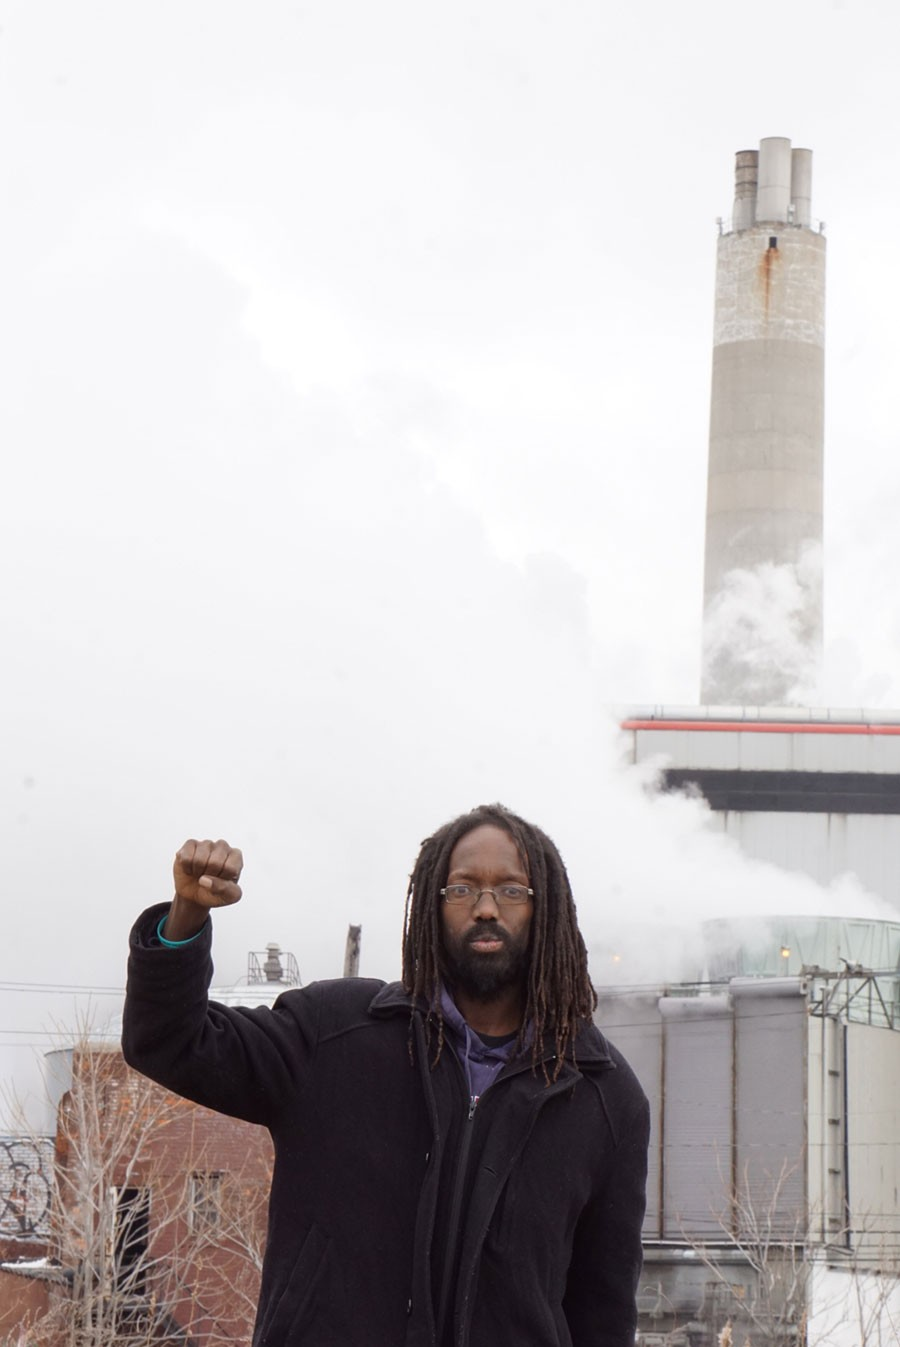 William Copeland is the climate justice director for the East Michigan Environmental Action Council, and is active with the Breathe Free Detroit campaign. - JAY JURMA